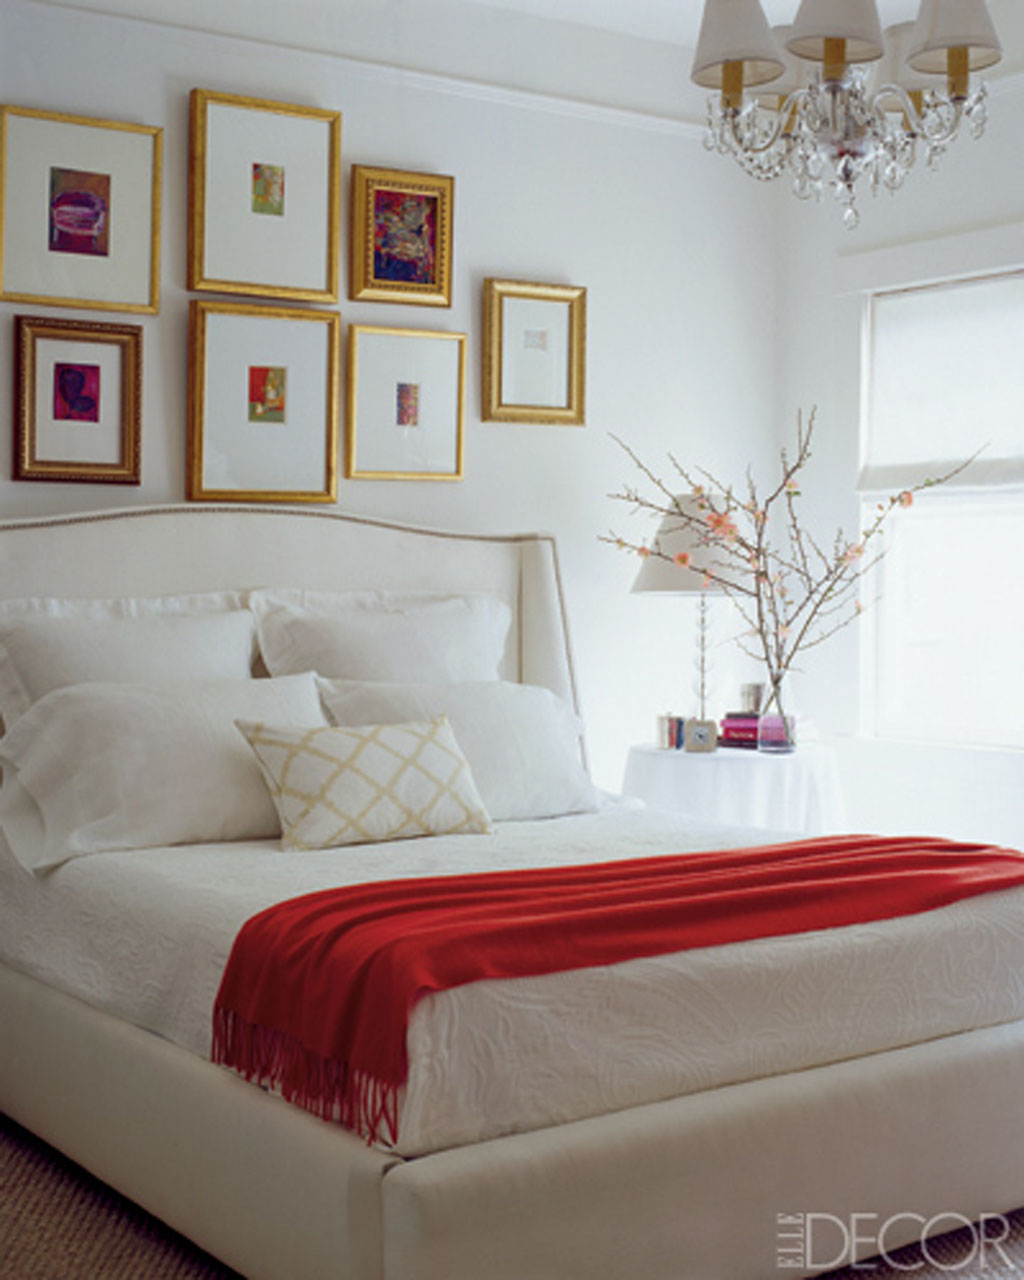 Black white and red bedroom ideas 5 small interior ideas - White bed design ideas ...